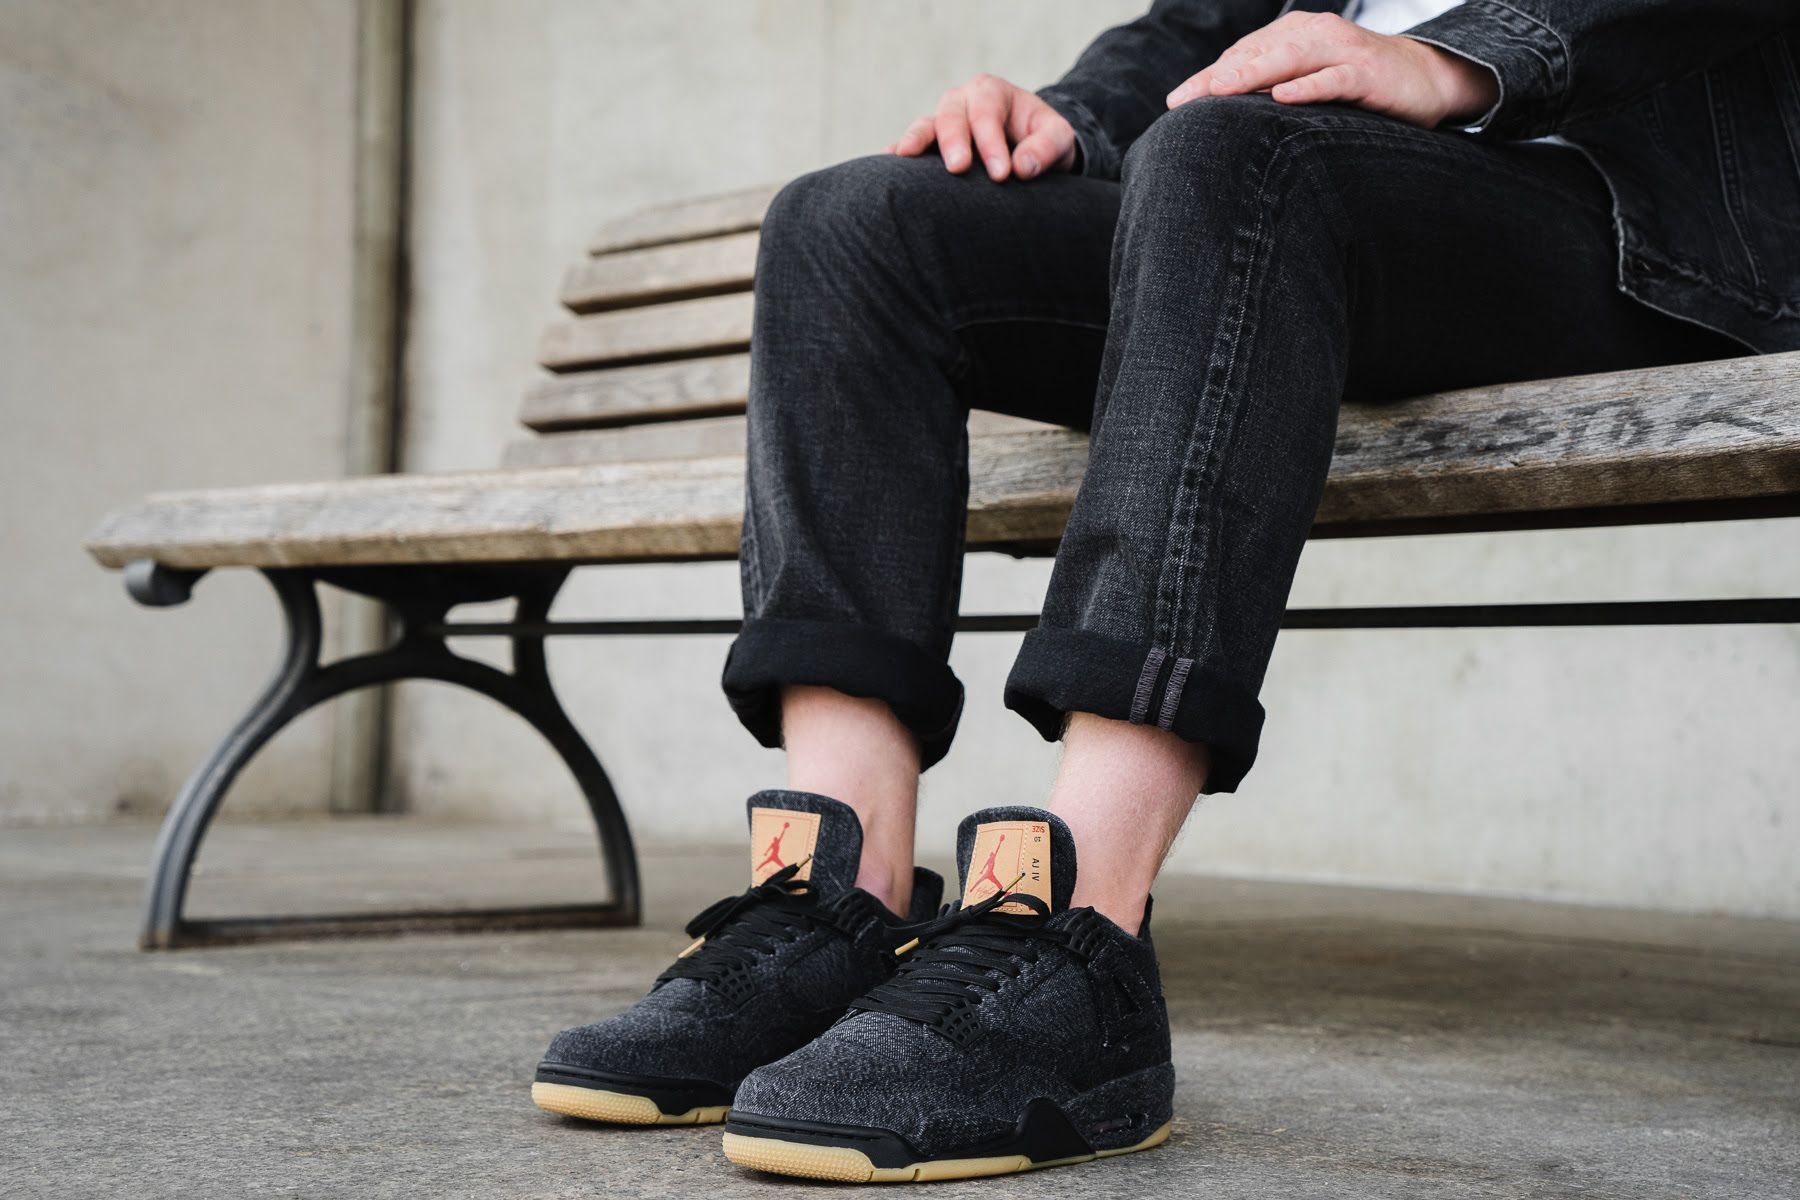 e12dde92f95add On-Foot  Levi s x Air Jordan IV in Black Denim and White Denim - EU Kicks   Sneaker Magazine